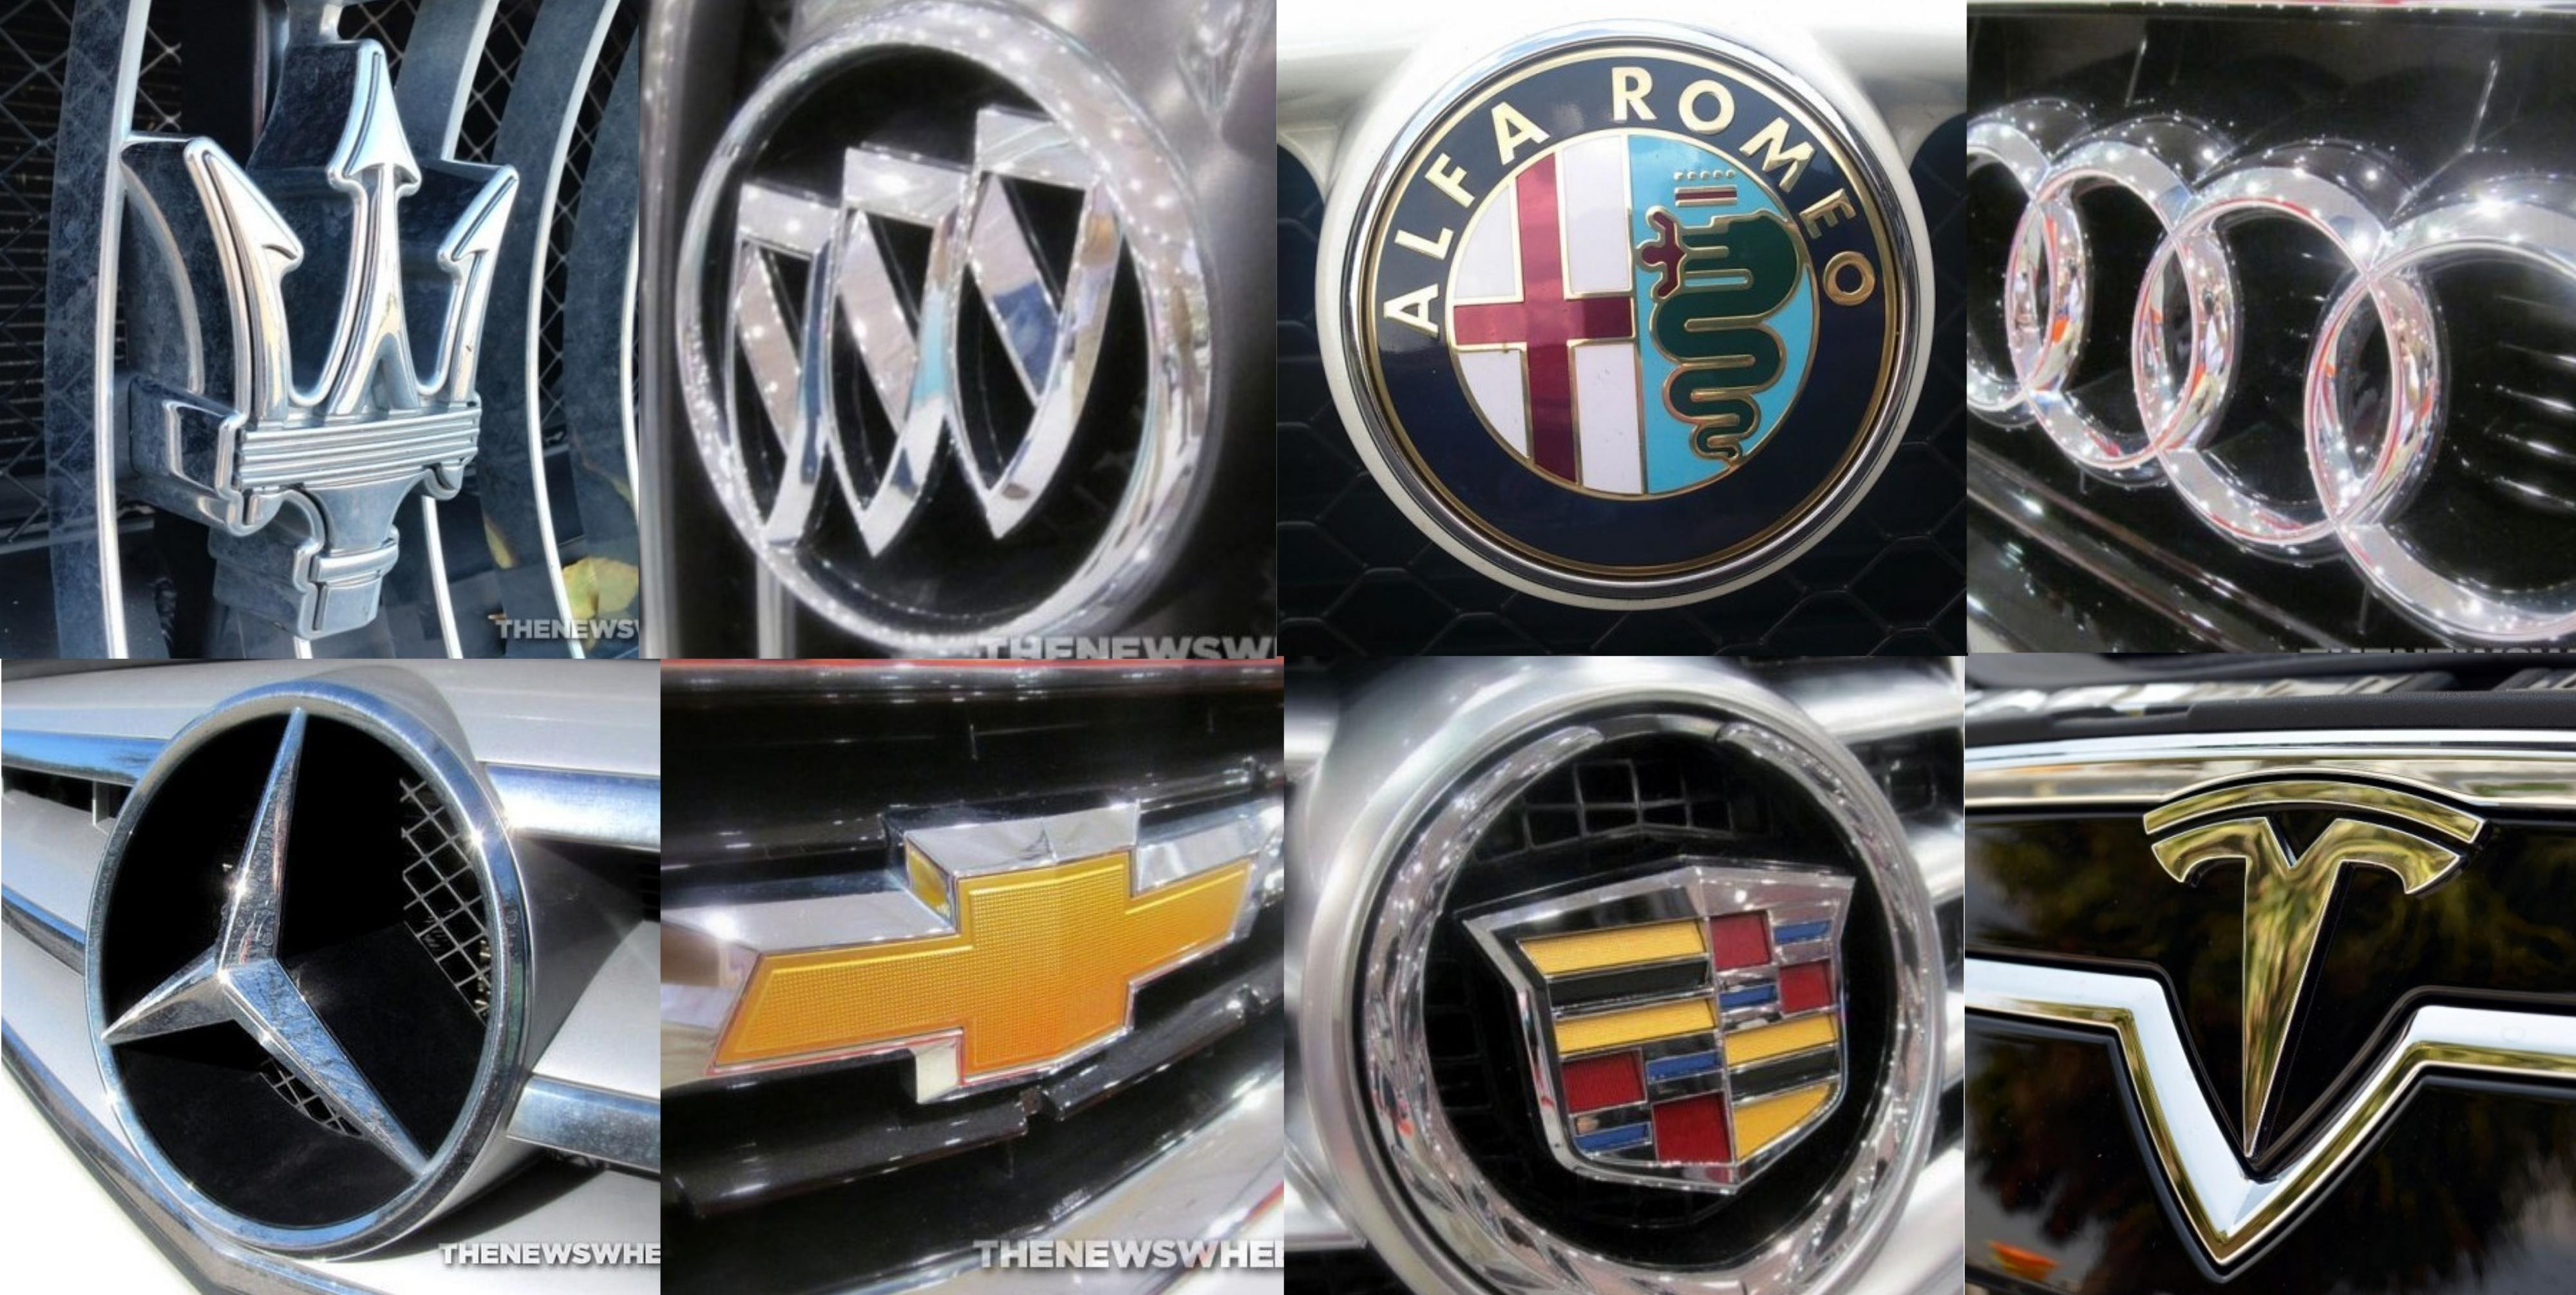 Trident Car Logo >> Behind The Badge 20 Fascinating Facts About The Hidden Meanings Of